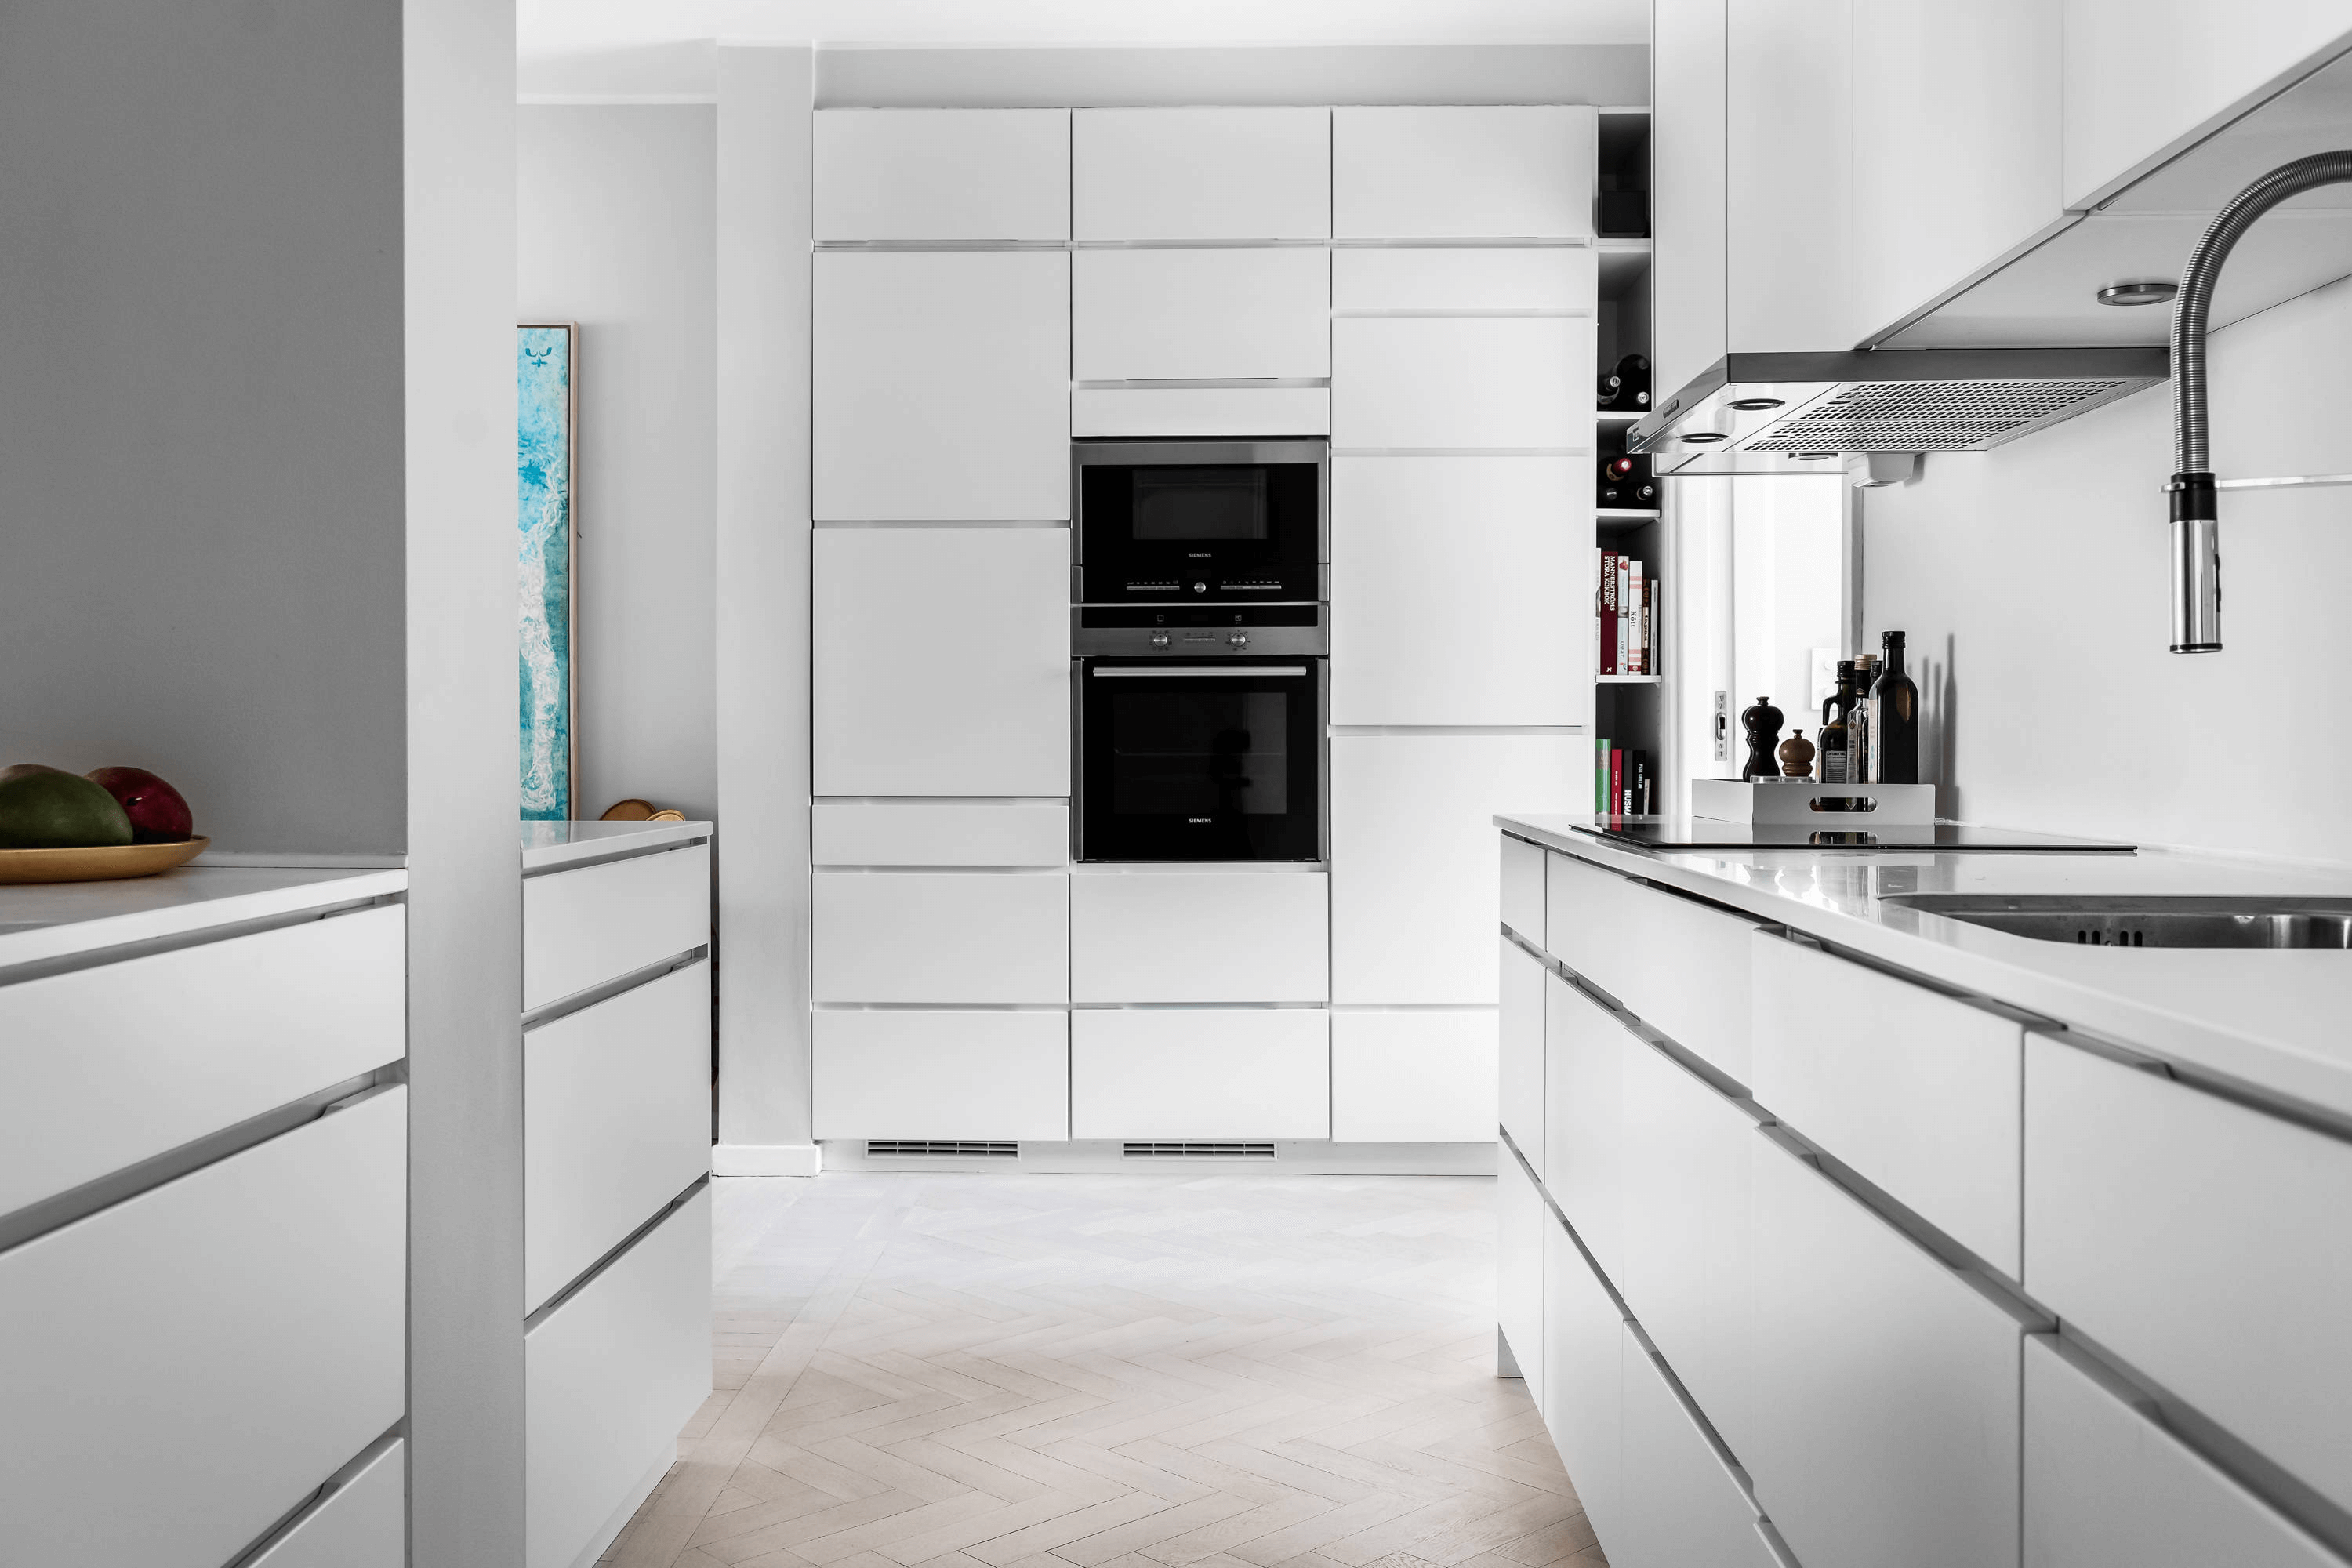 this is a modern scandinavian kitchen with white fixtures, clean lines and minimal objects on surfaces